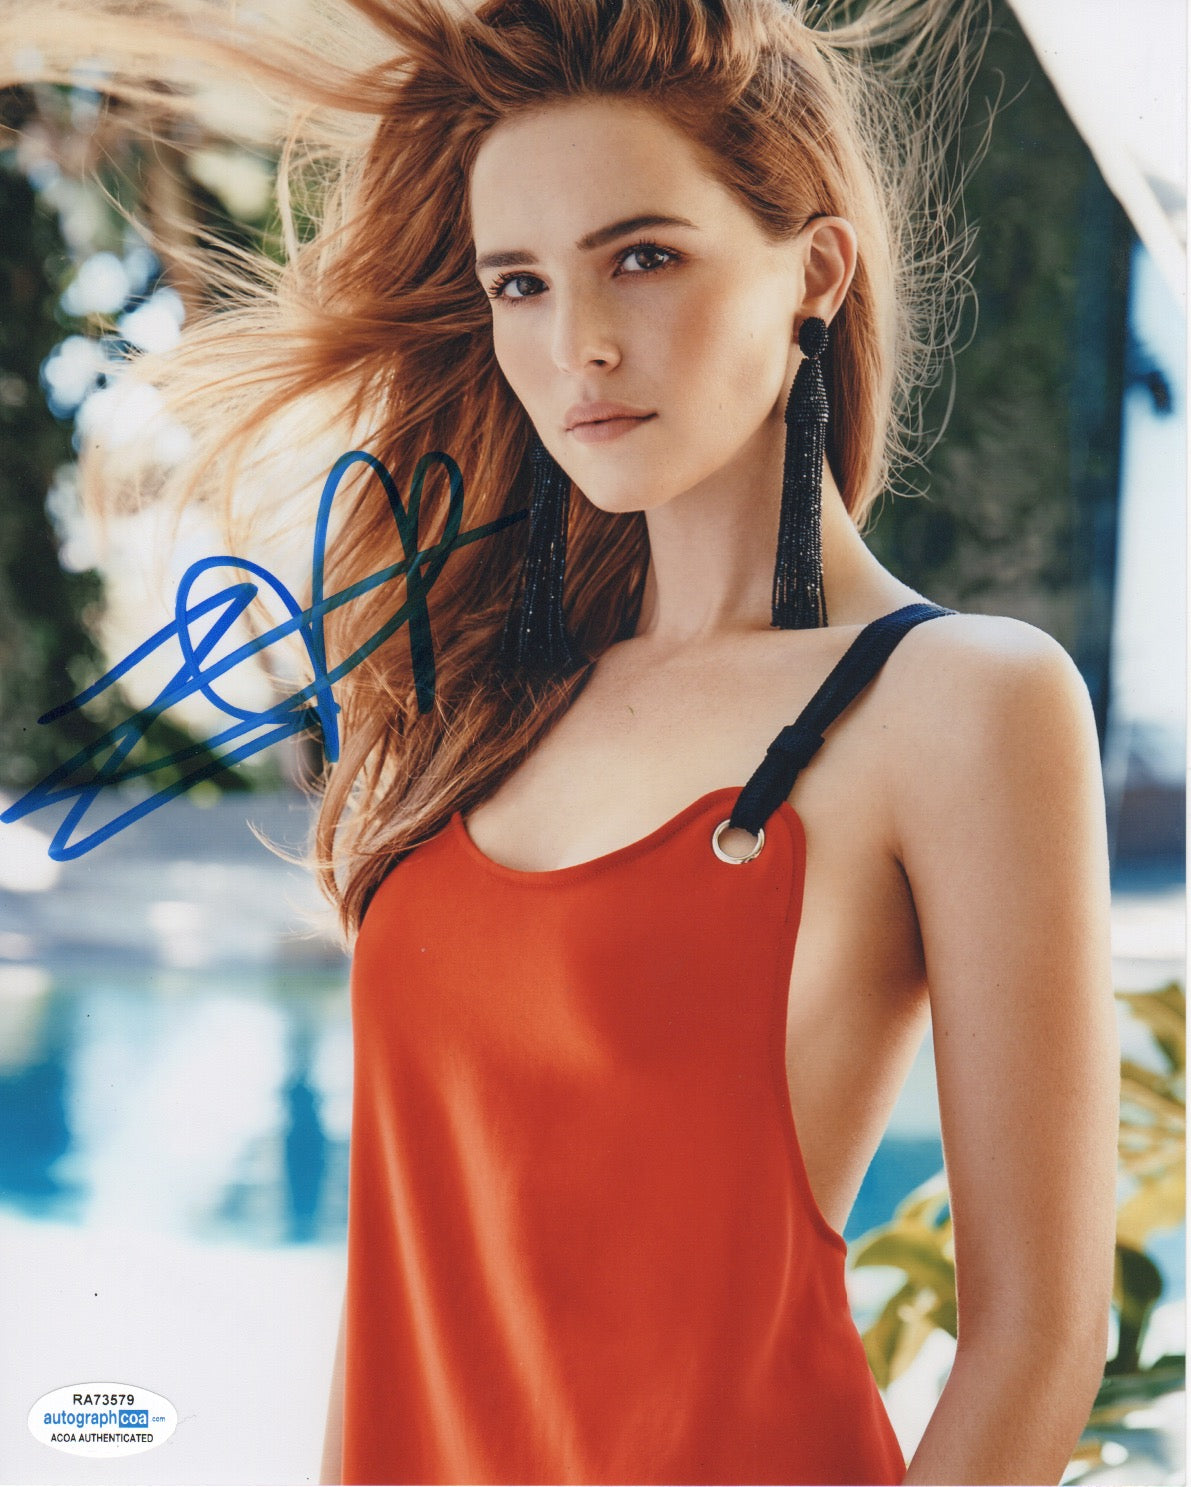 Zoey Deutch Sexy Signed Autograph 8x10 Photo #4